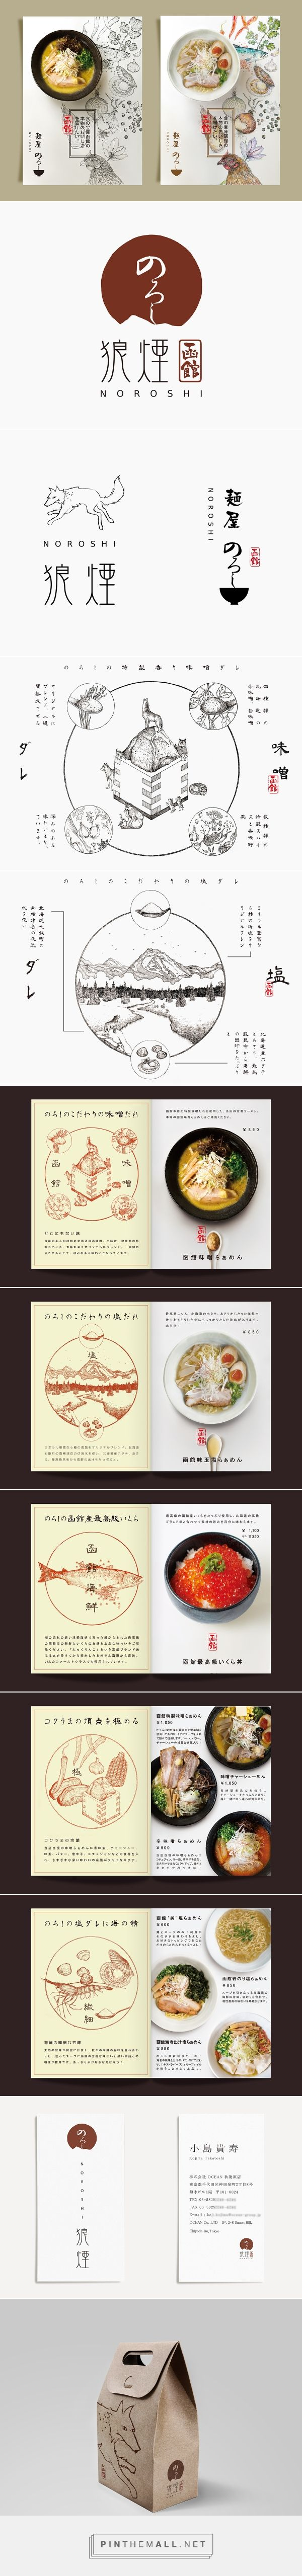 Devi Soewono | NOROSHI (麺屋のろし) a Japanese ramen branding identity project designed by Lee Ching Tat(李 政達)http://www.devisoewono.com/design/noroshi-(麺屋のろし)/